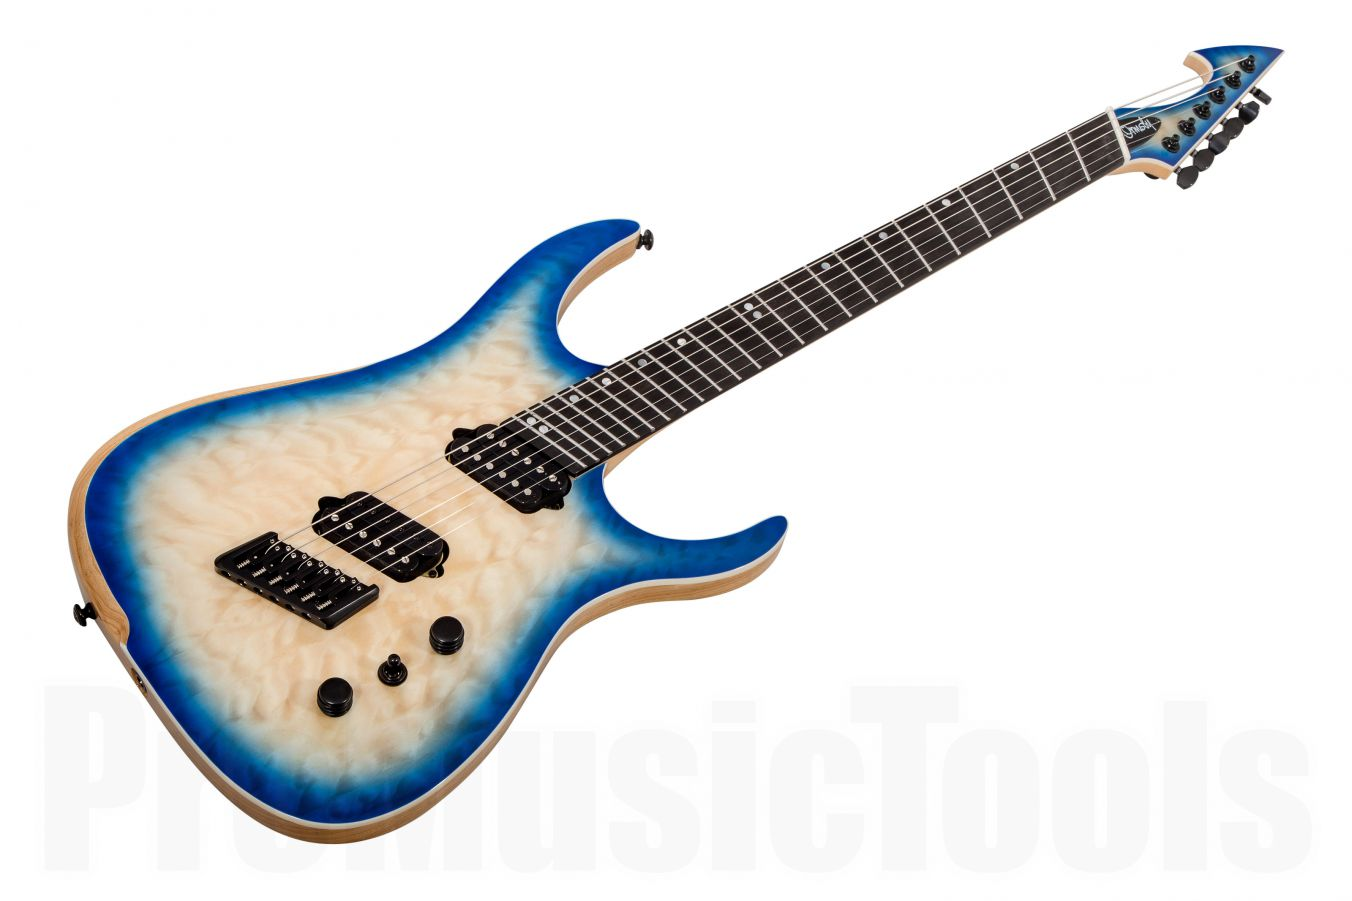 Ormsby Hype GTR6 (Run 5B) Multiscale QBB - Quilted Blueburst